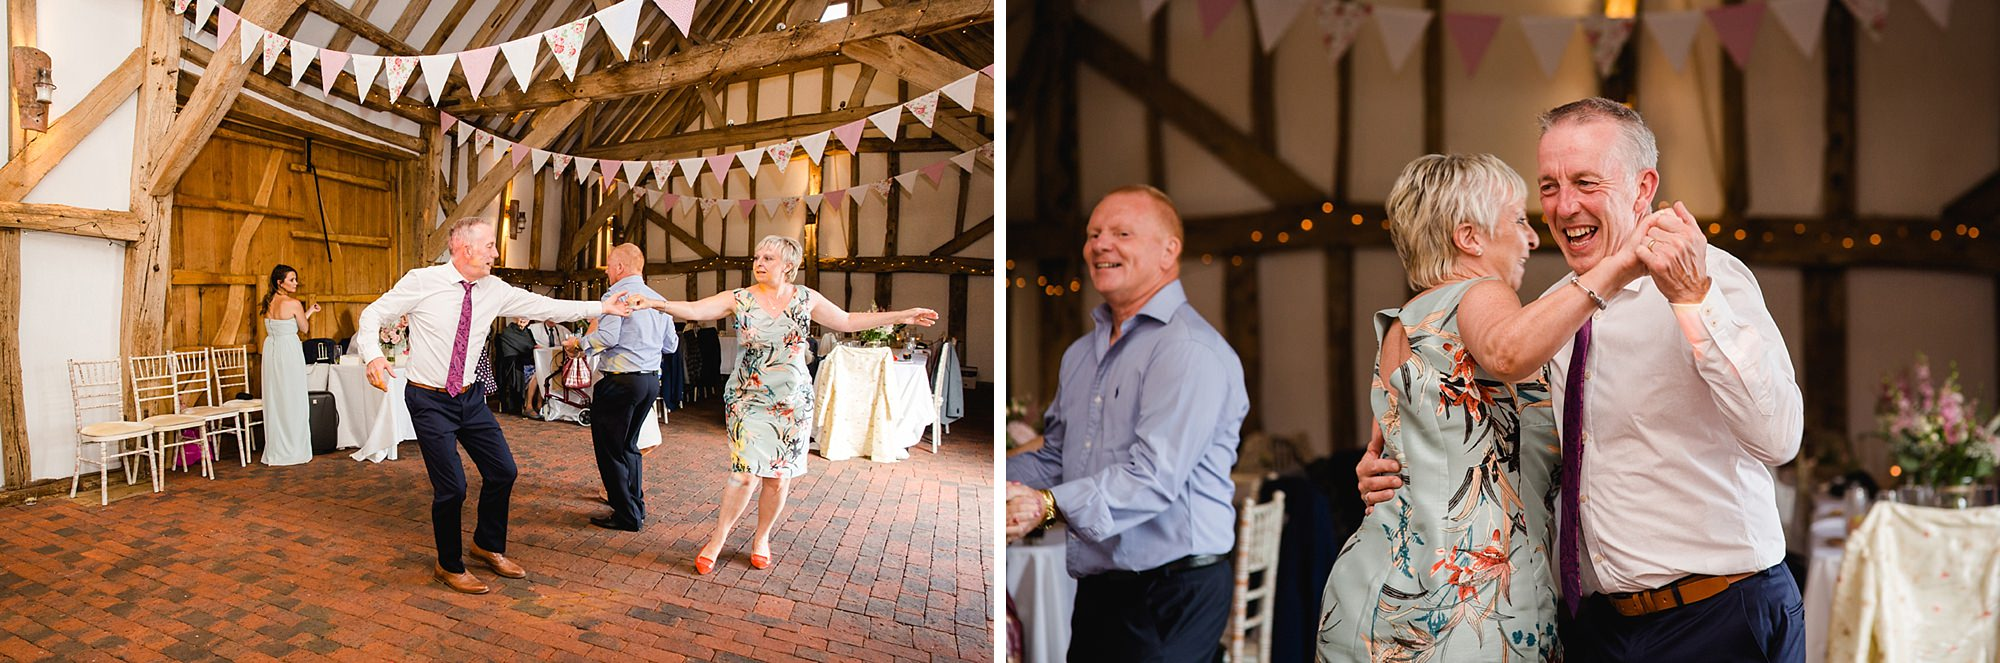 Old Greens Barn Newdigate wedding photography wedding guests dancing